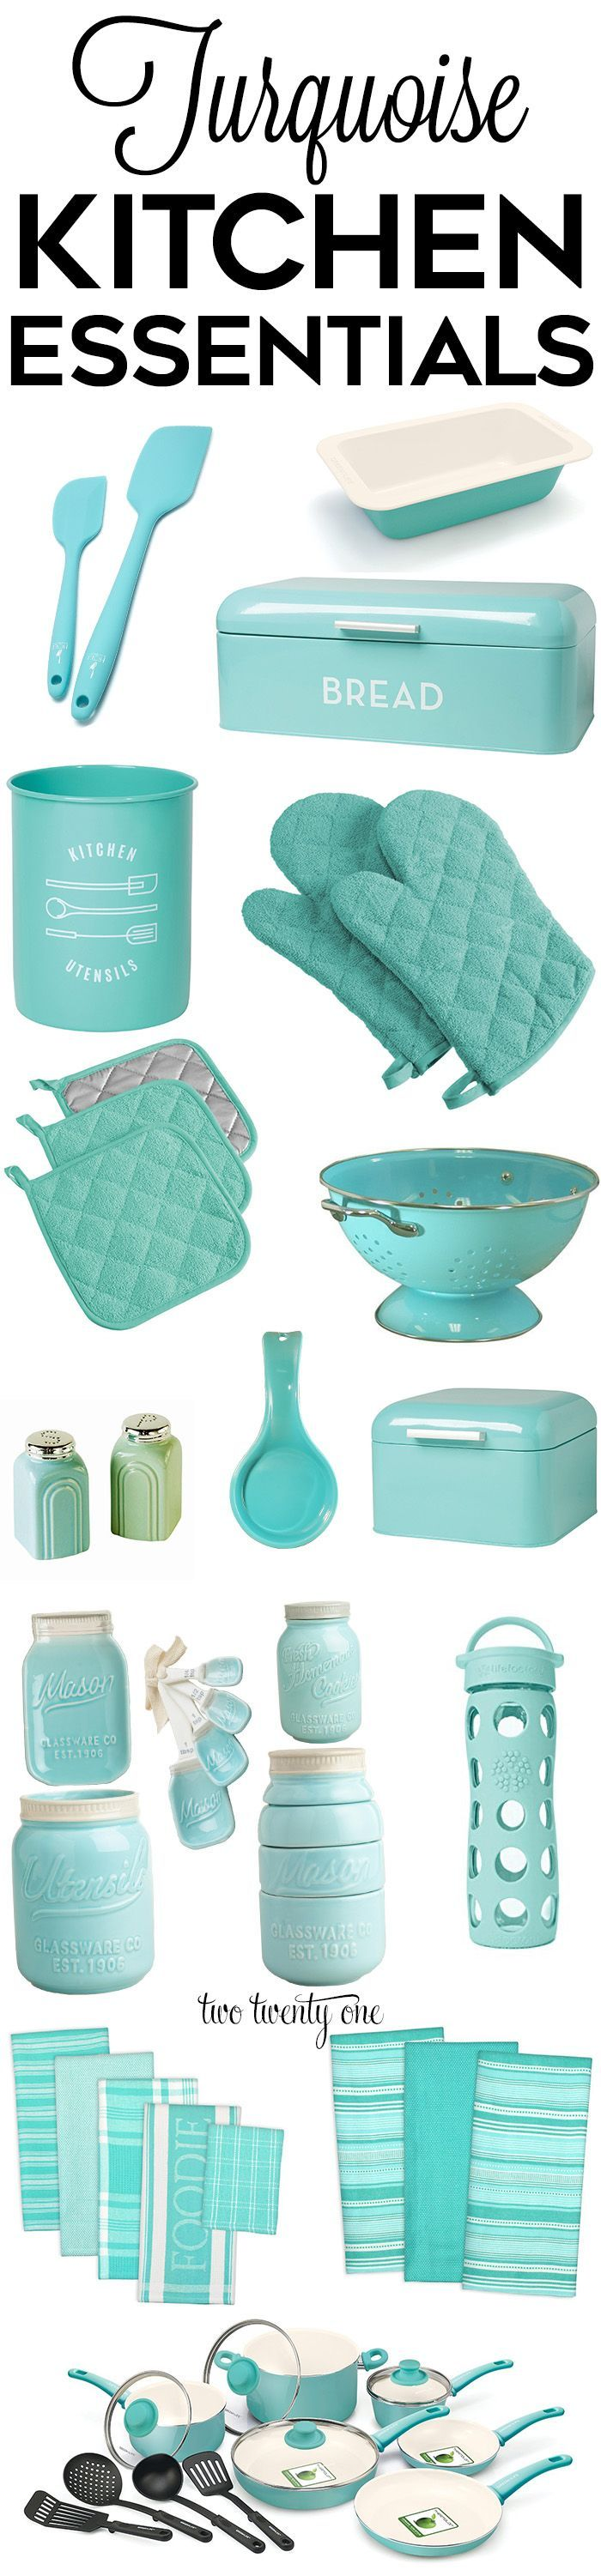 Turquoise Kitchen Decor & Appliances | Pinterest | Kitchen decor ...